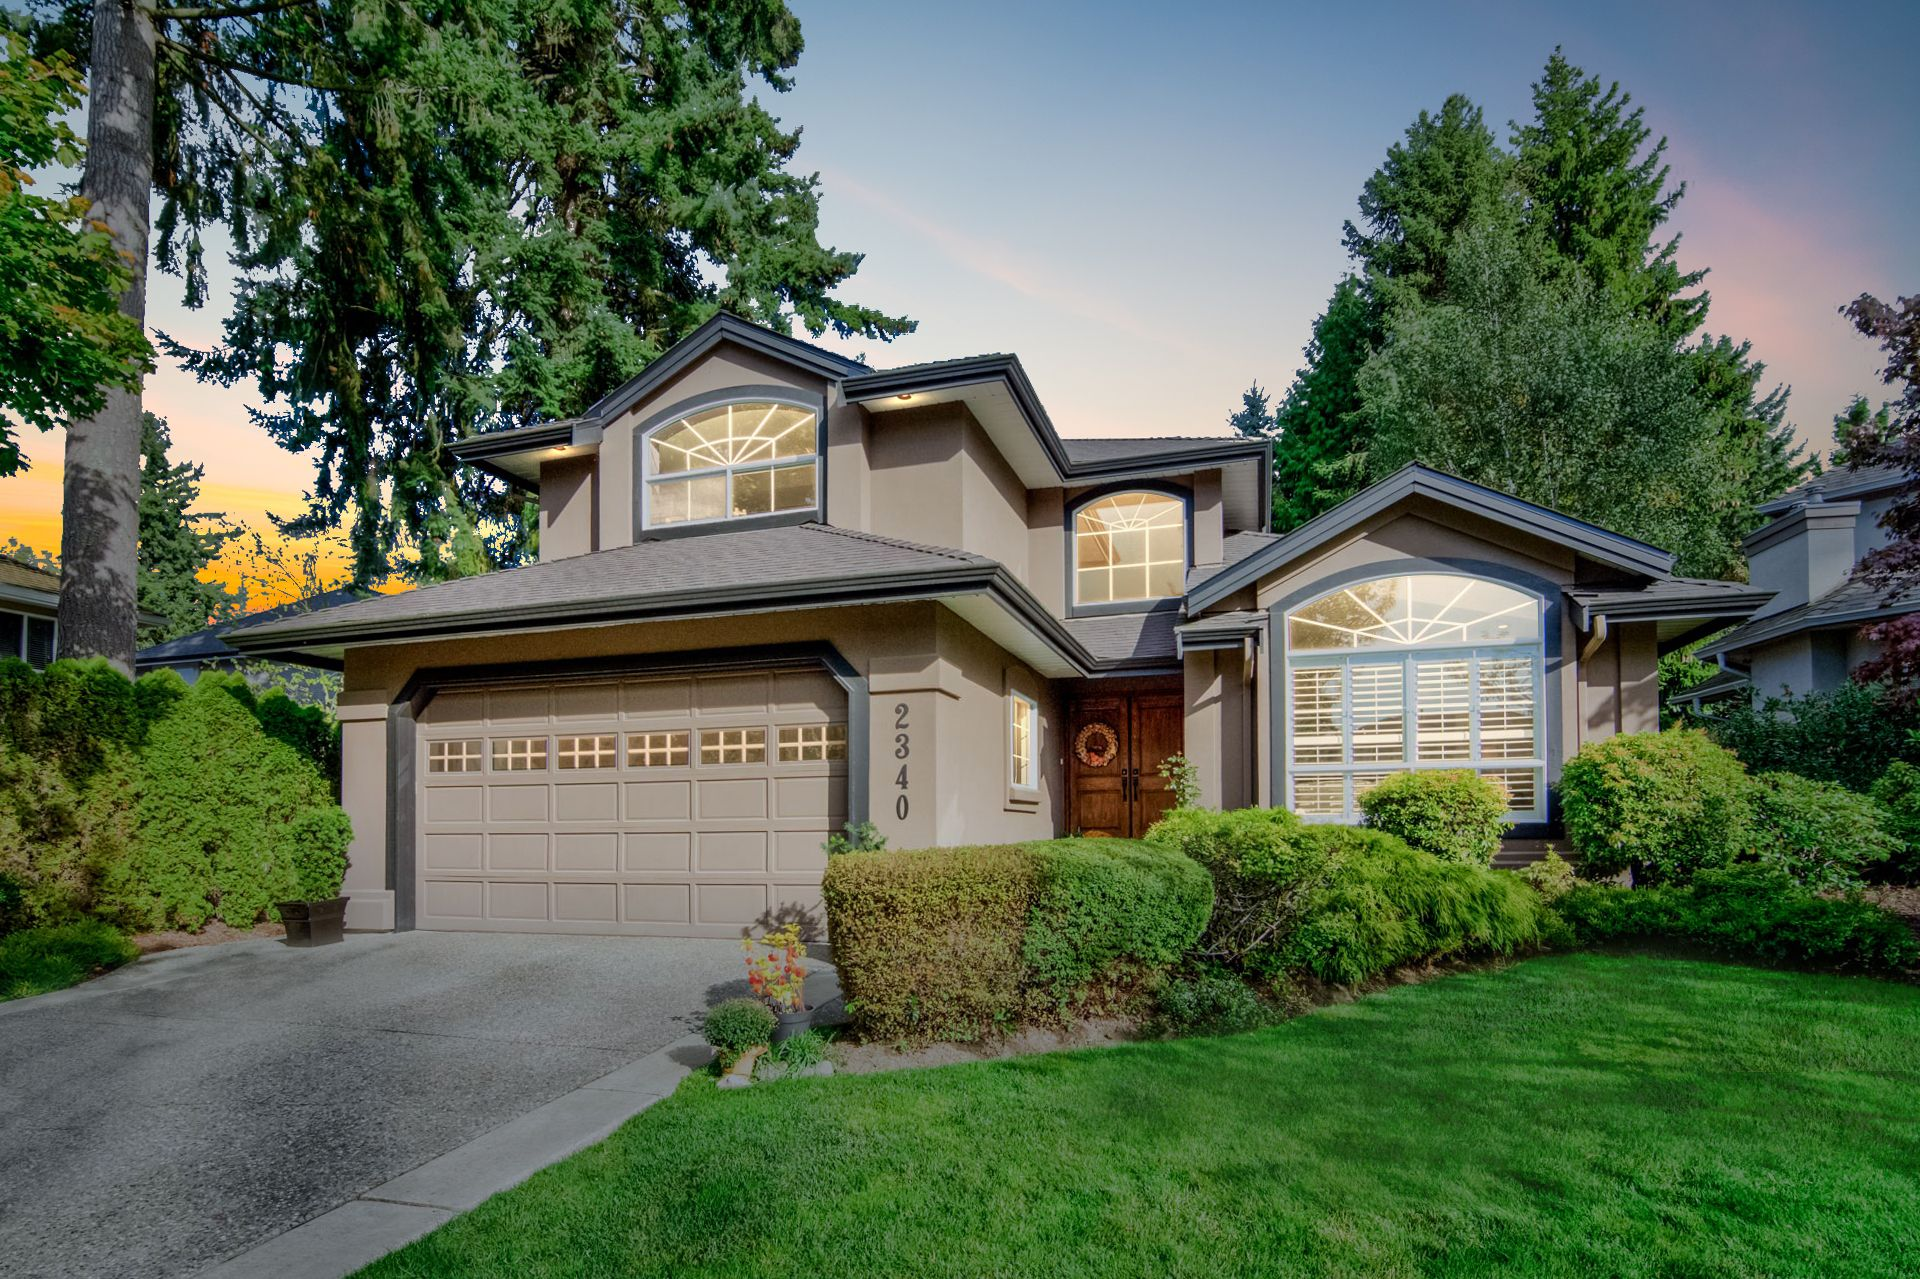 """Main Photo: 2340 140A Street in Surrey: Sunnyside Park Surrey House for sale in """"FOREST EDGE"""" (South Surrey White Rock)  : MLS®# R2346515"""